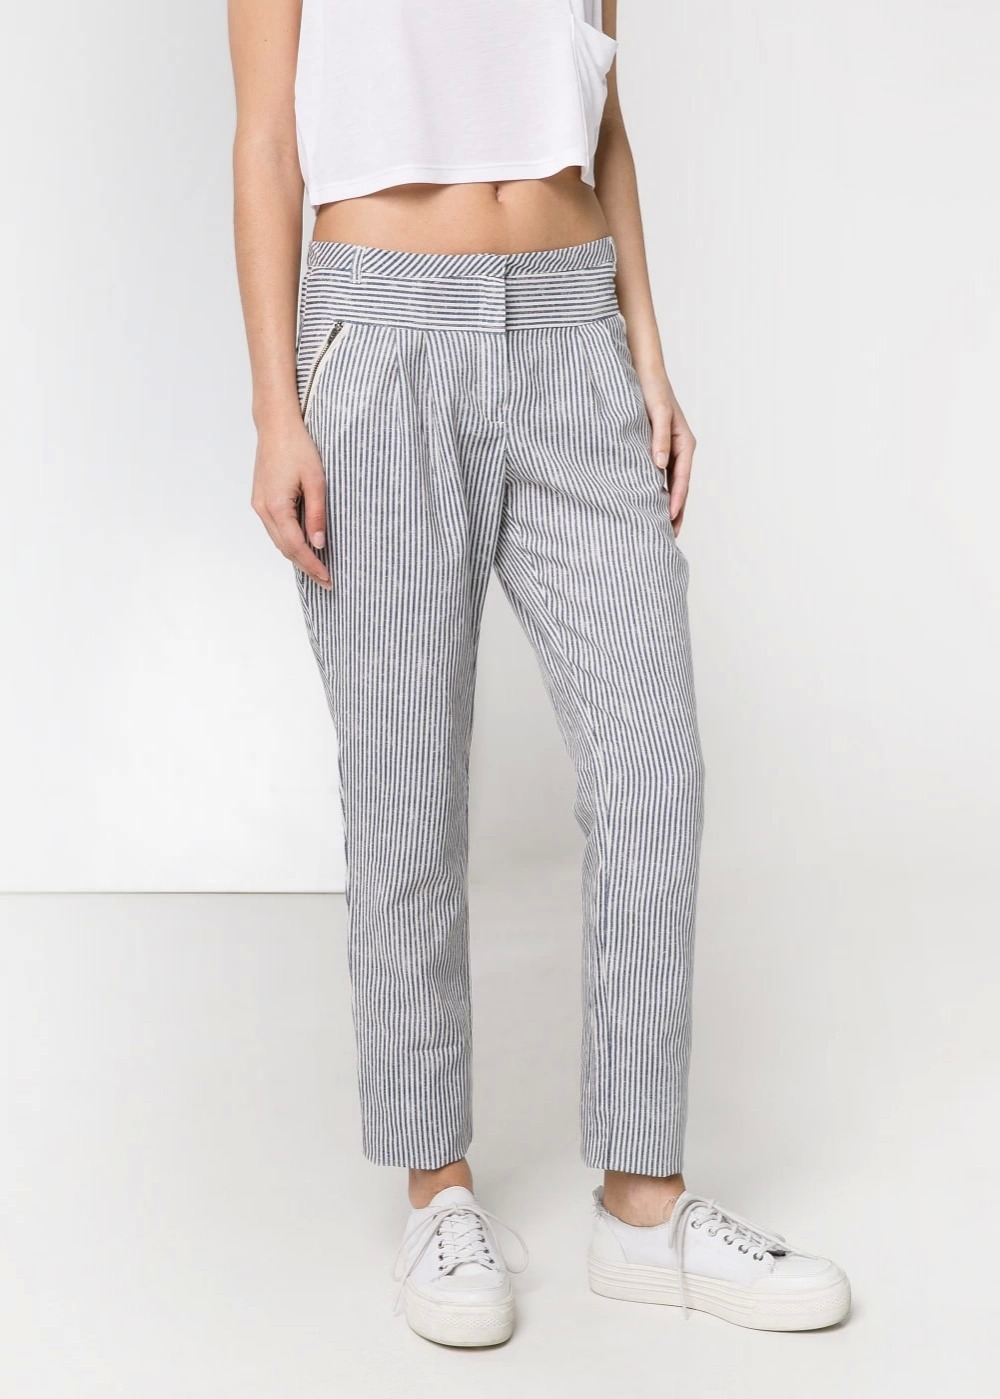 Wholesale Lounge Stretch Cotton Pants - from $10.06